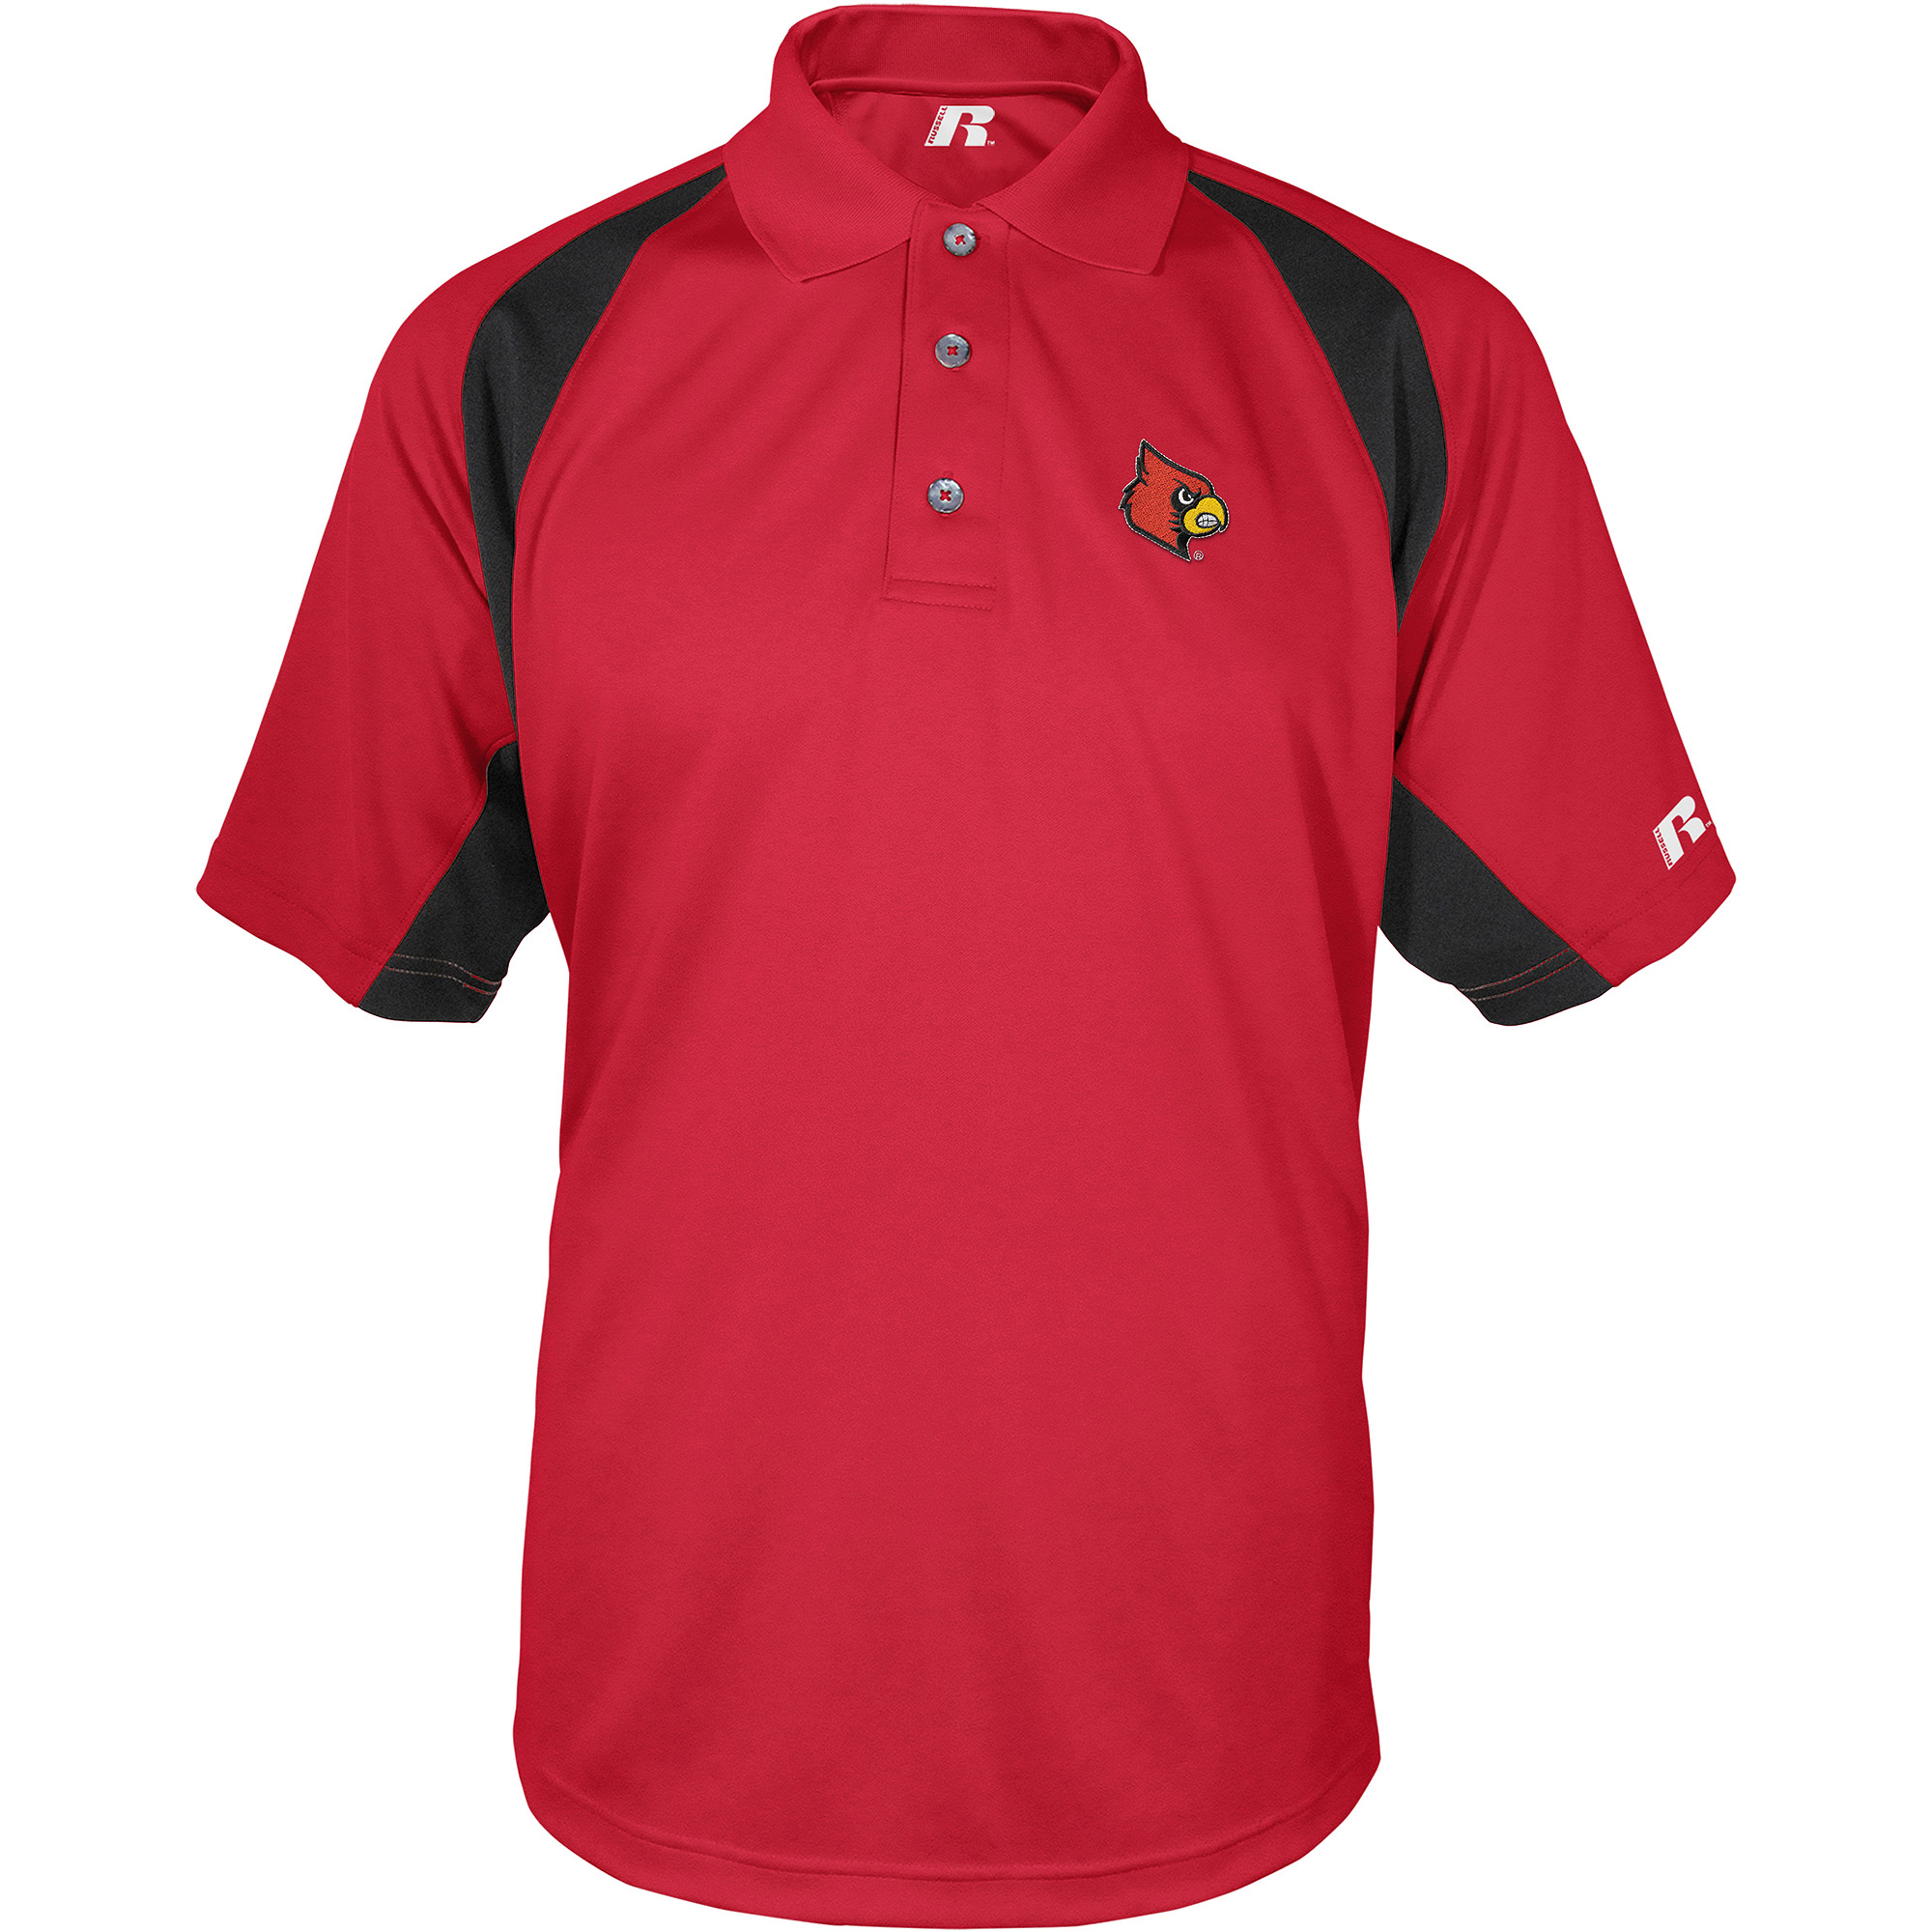 Russell NCAA Louisville Cardinals, Men's Synthetic Polo